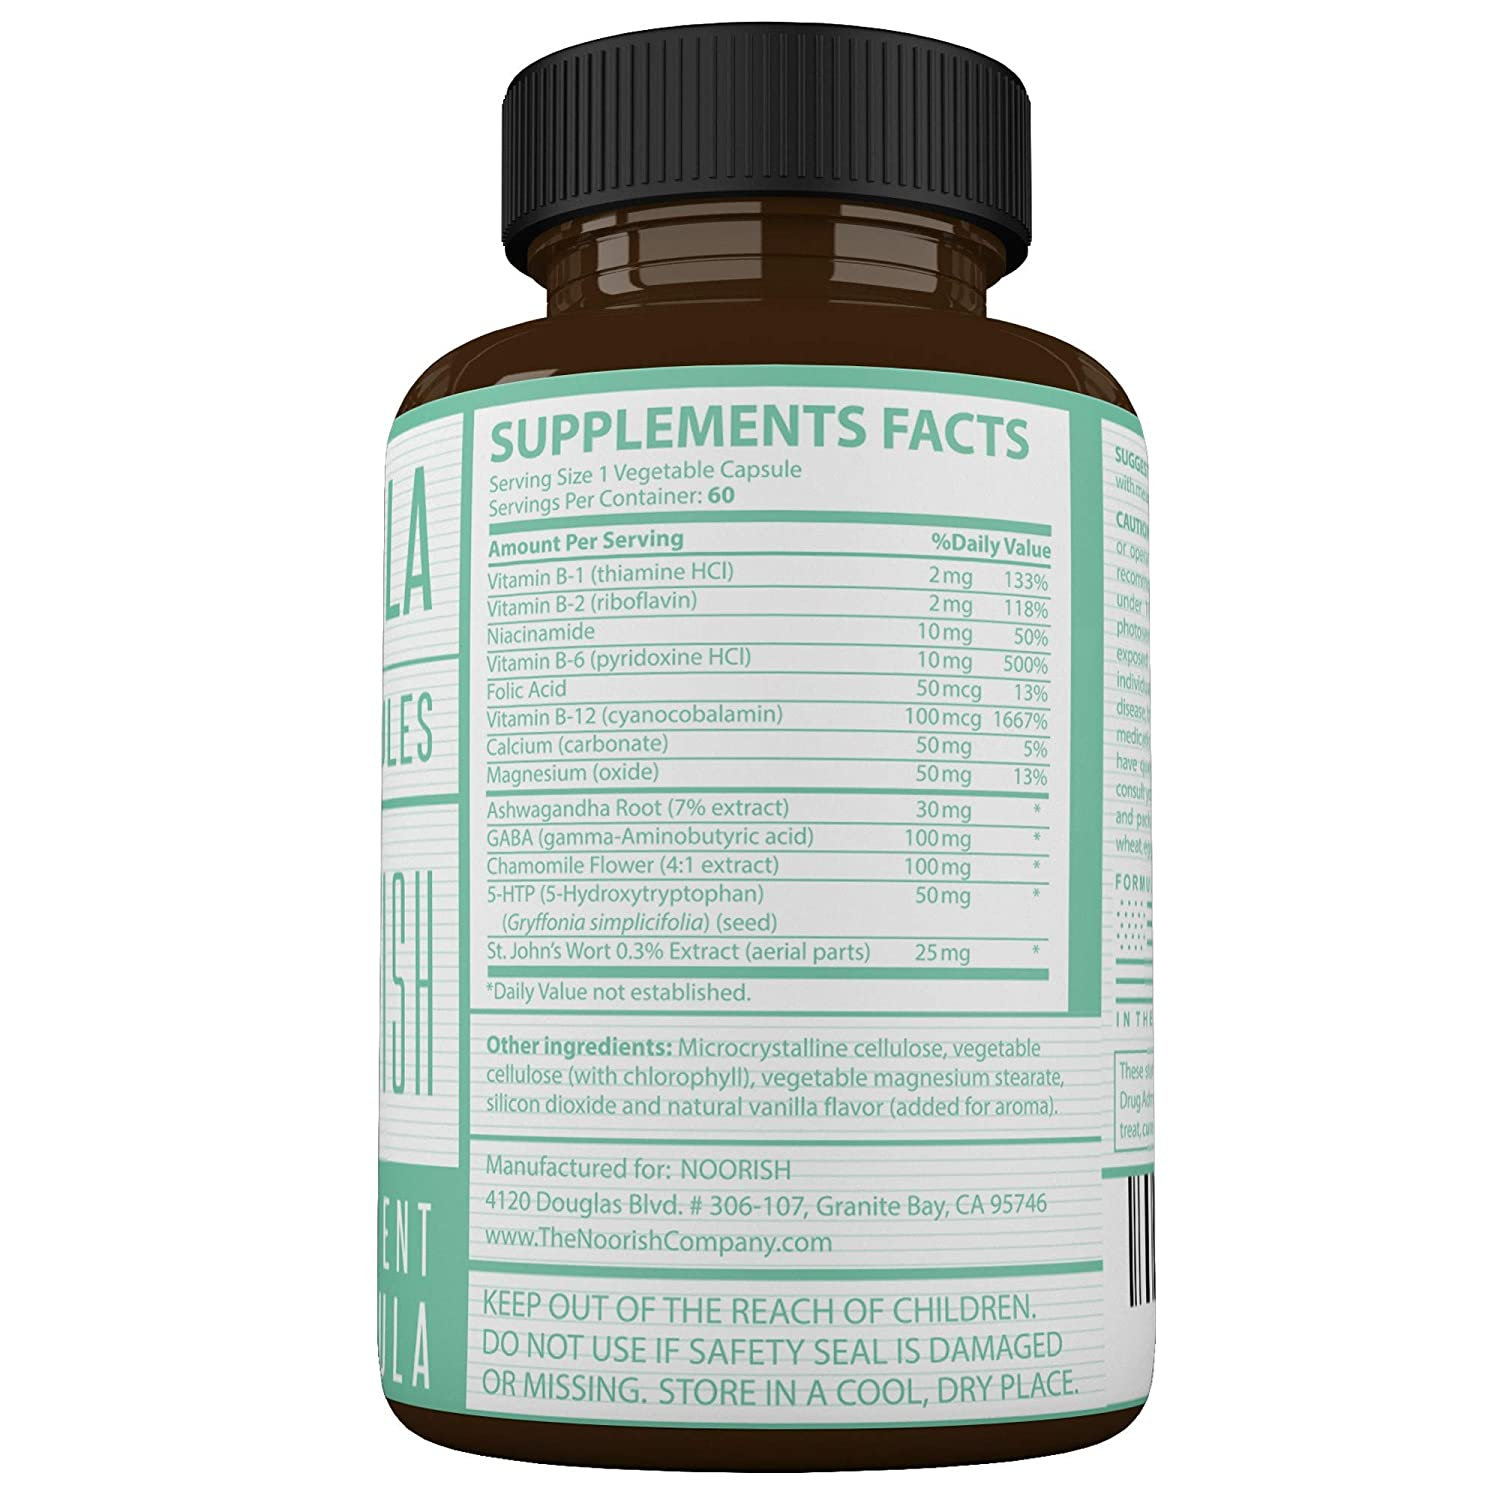 Amazon.com: Mood Enhancer - Mood Stabilizer - Mood Support Supplement with Ashwagandha, GABA, 5-HTP, Chamomile, and St. Johns Wort.